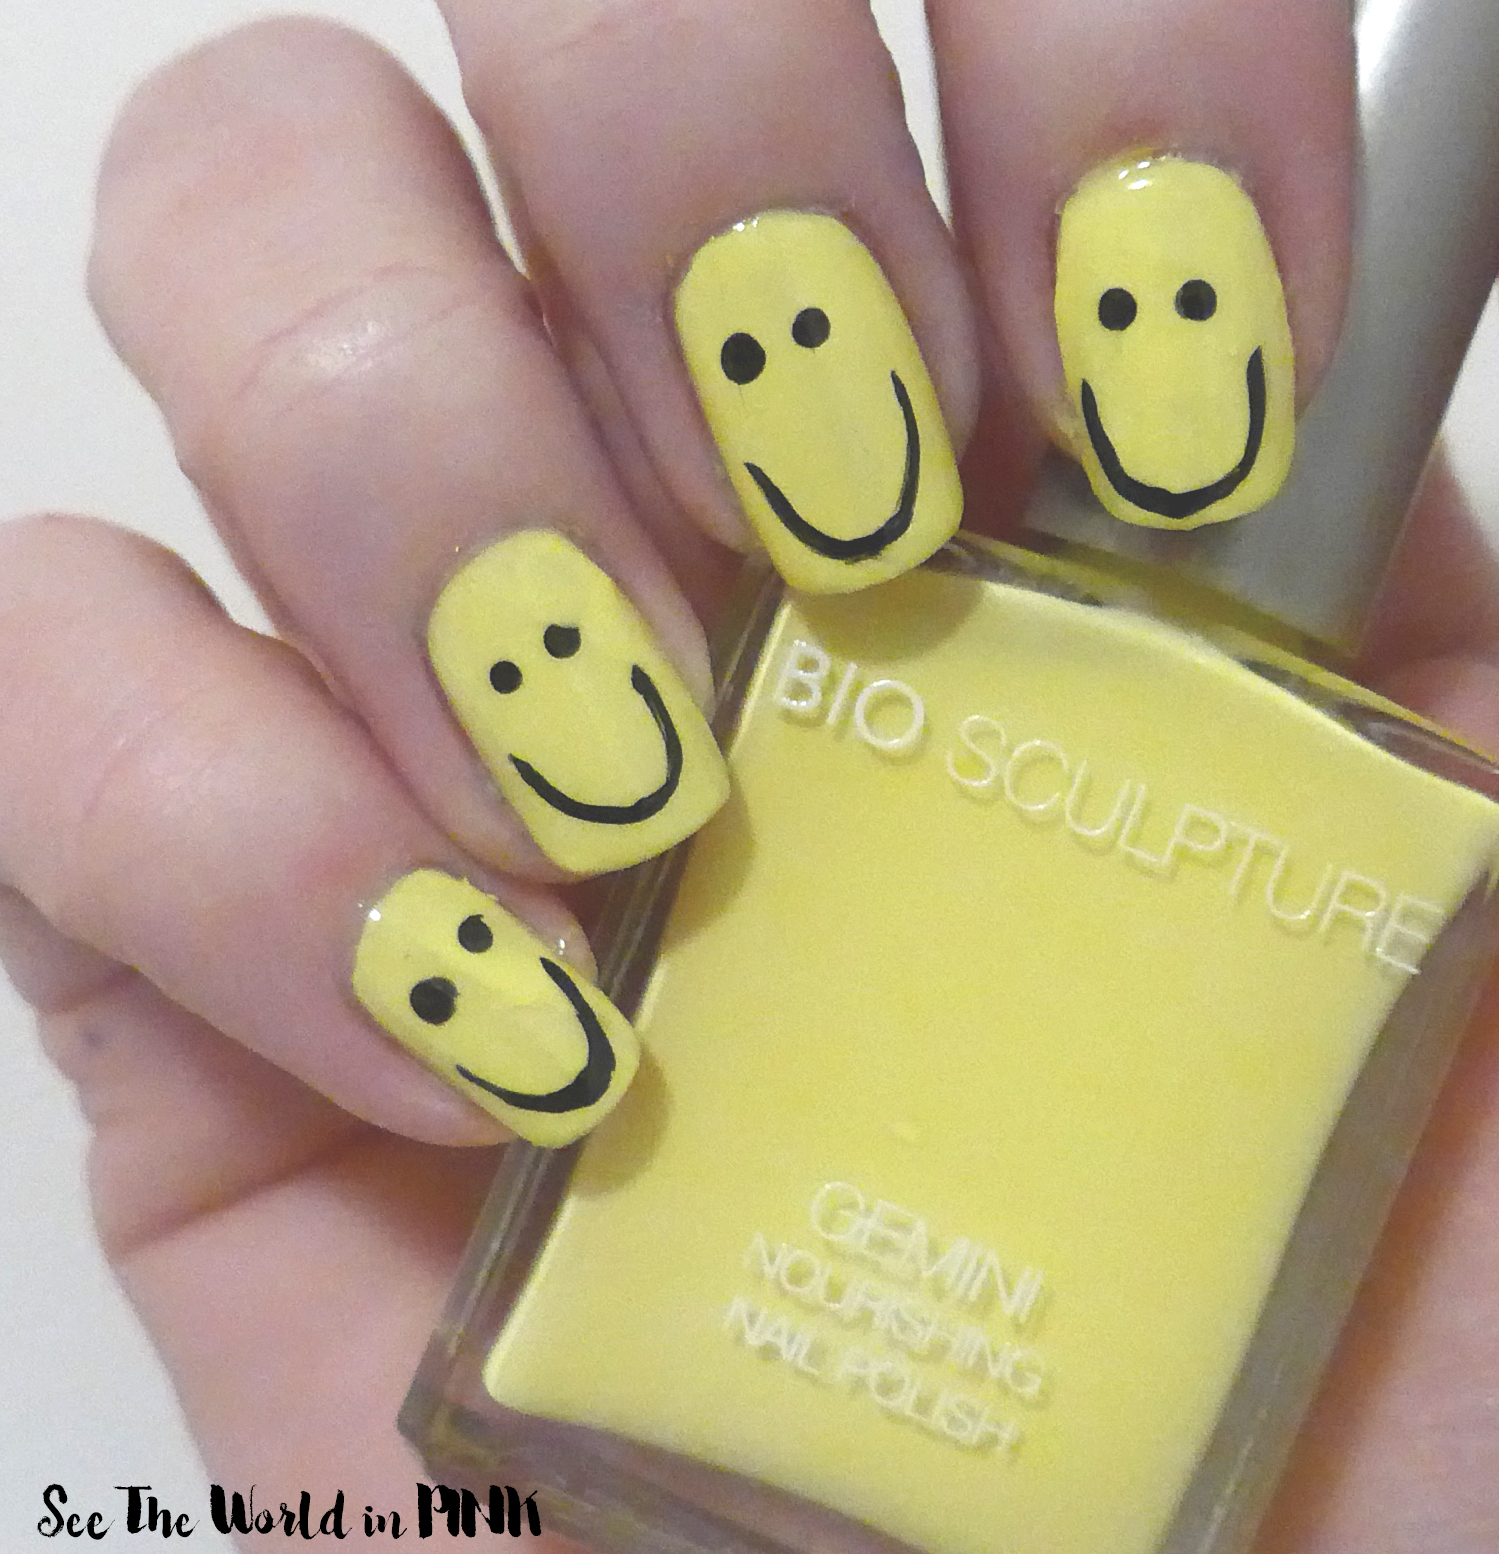 Manicure Monday - Happy Face Nails